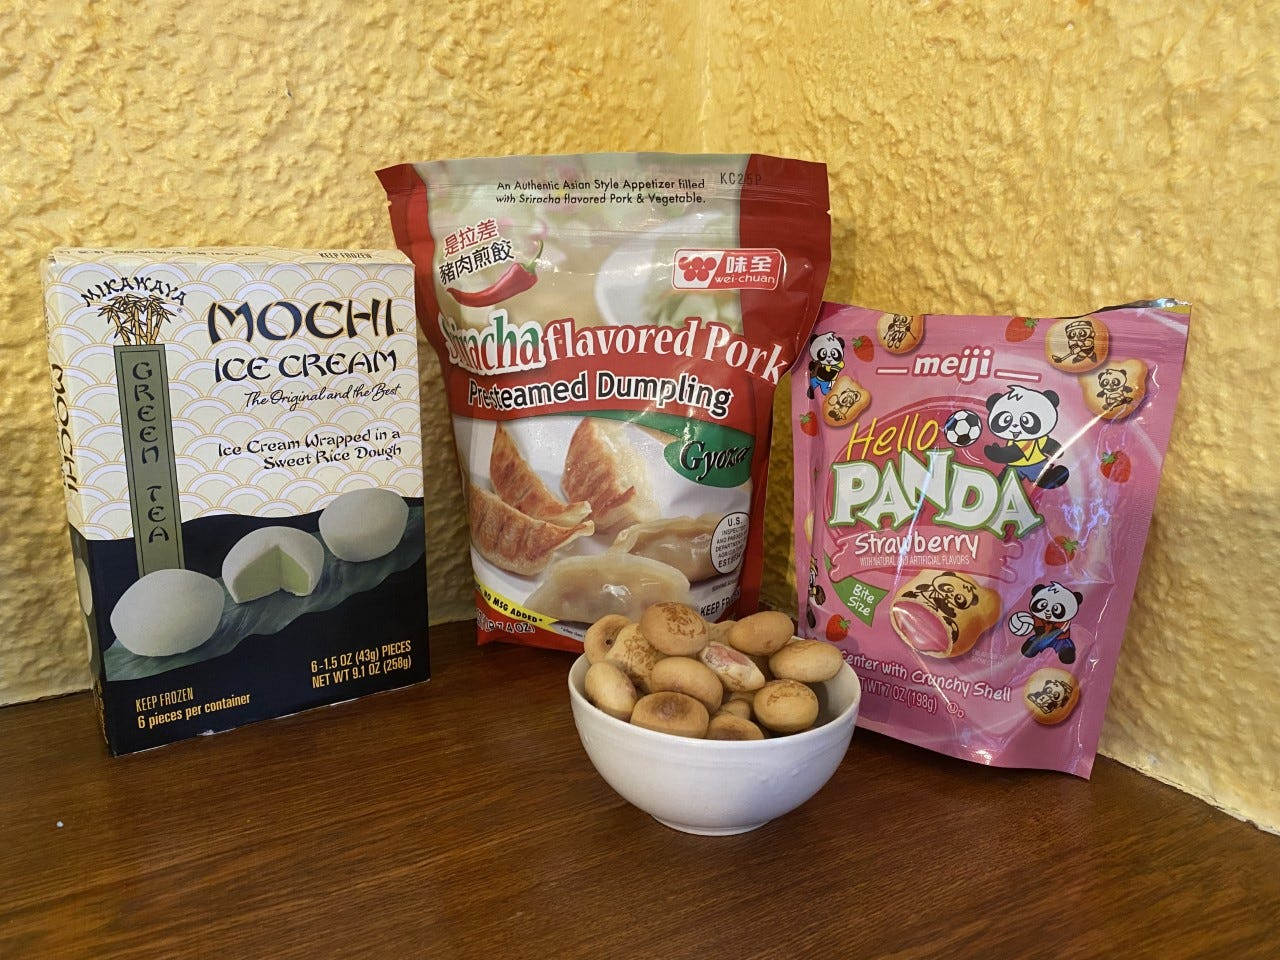 International snacks to munch on during 2021 Olympics, from naan chips to green tea mochi